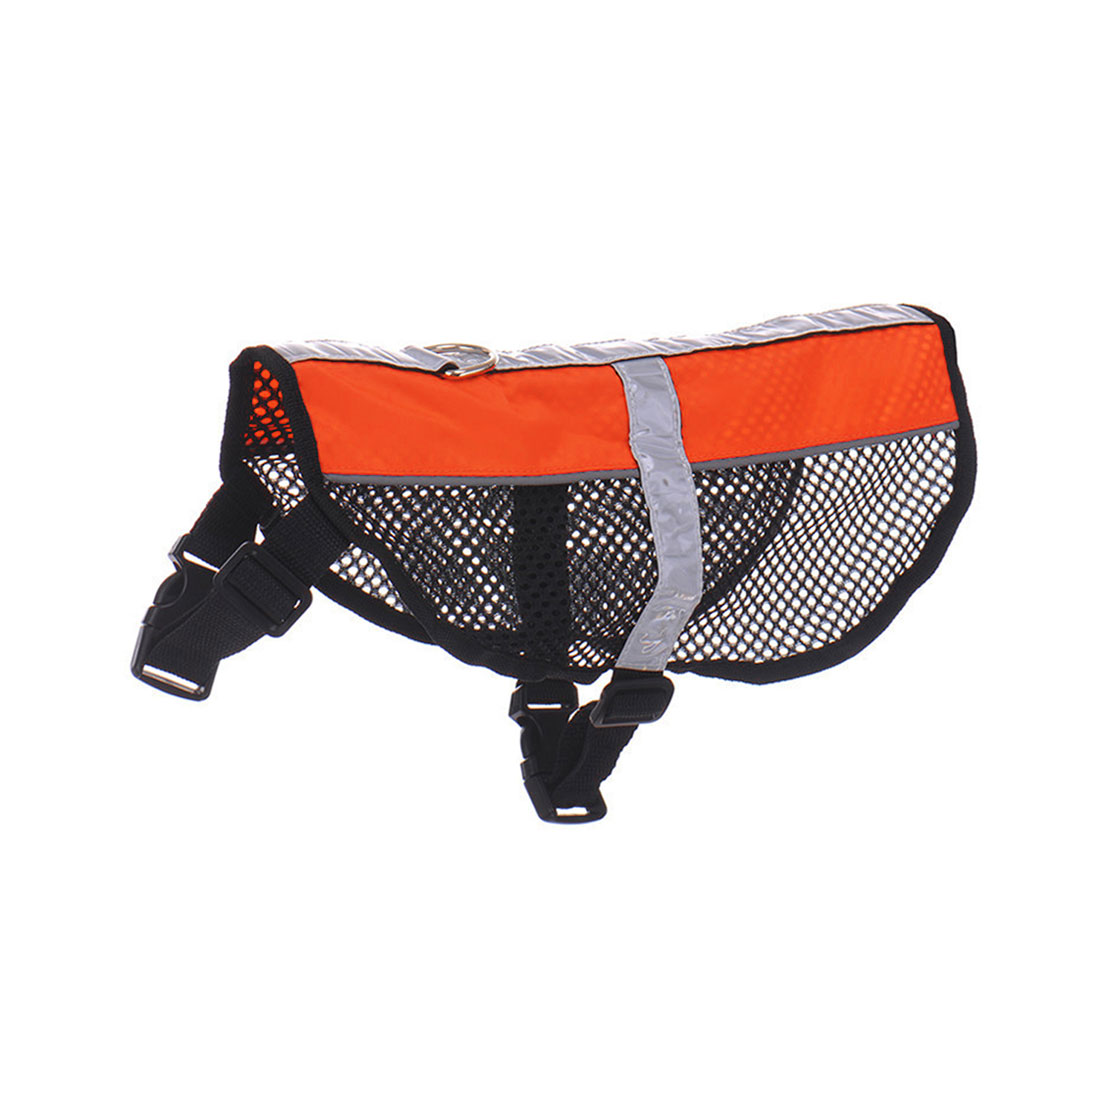 Service Dog Mesh Vest Harness Cool Comfort Nylon High Visibility Safety Jacket Orange S